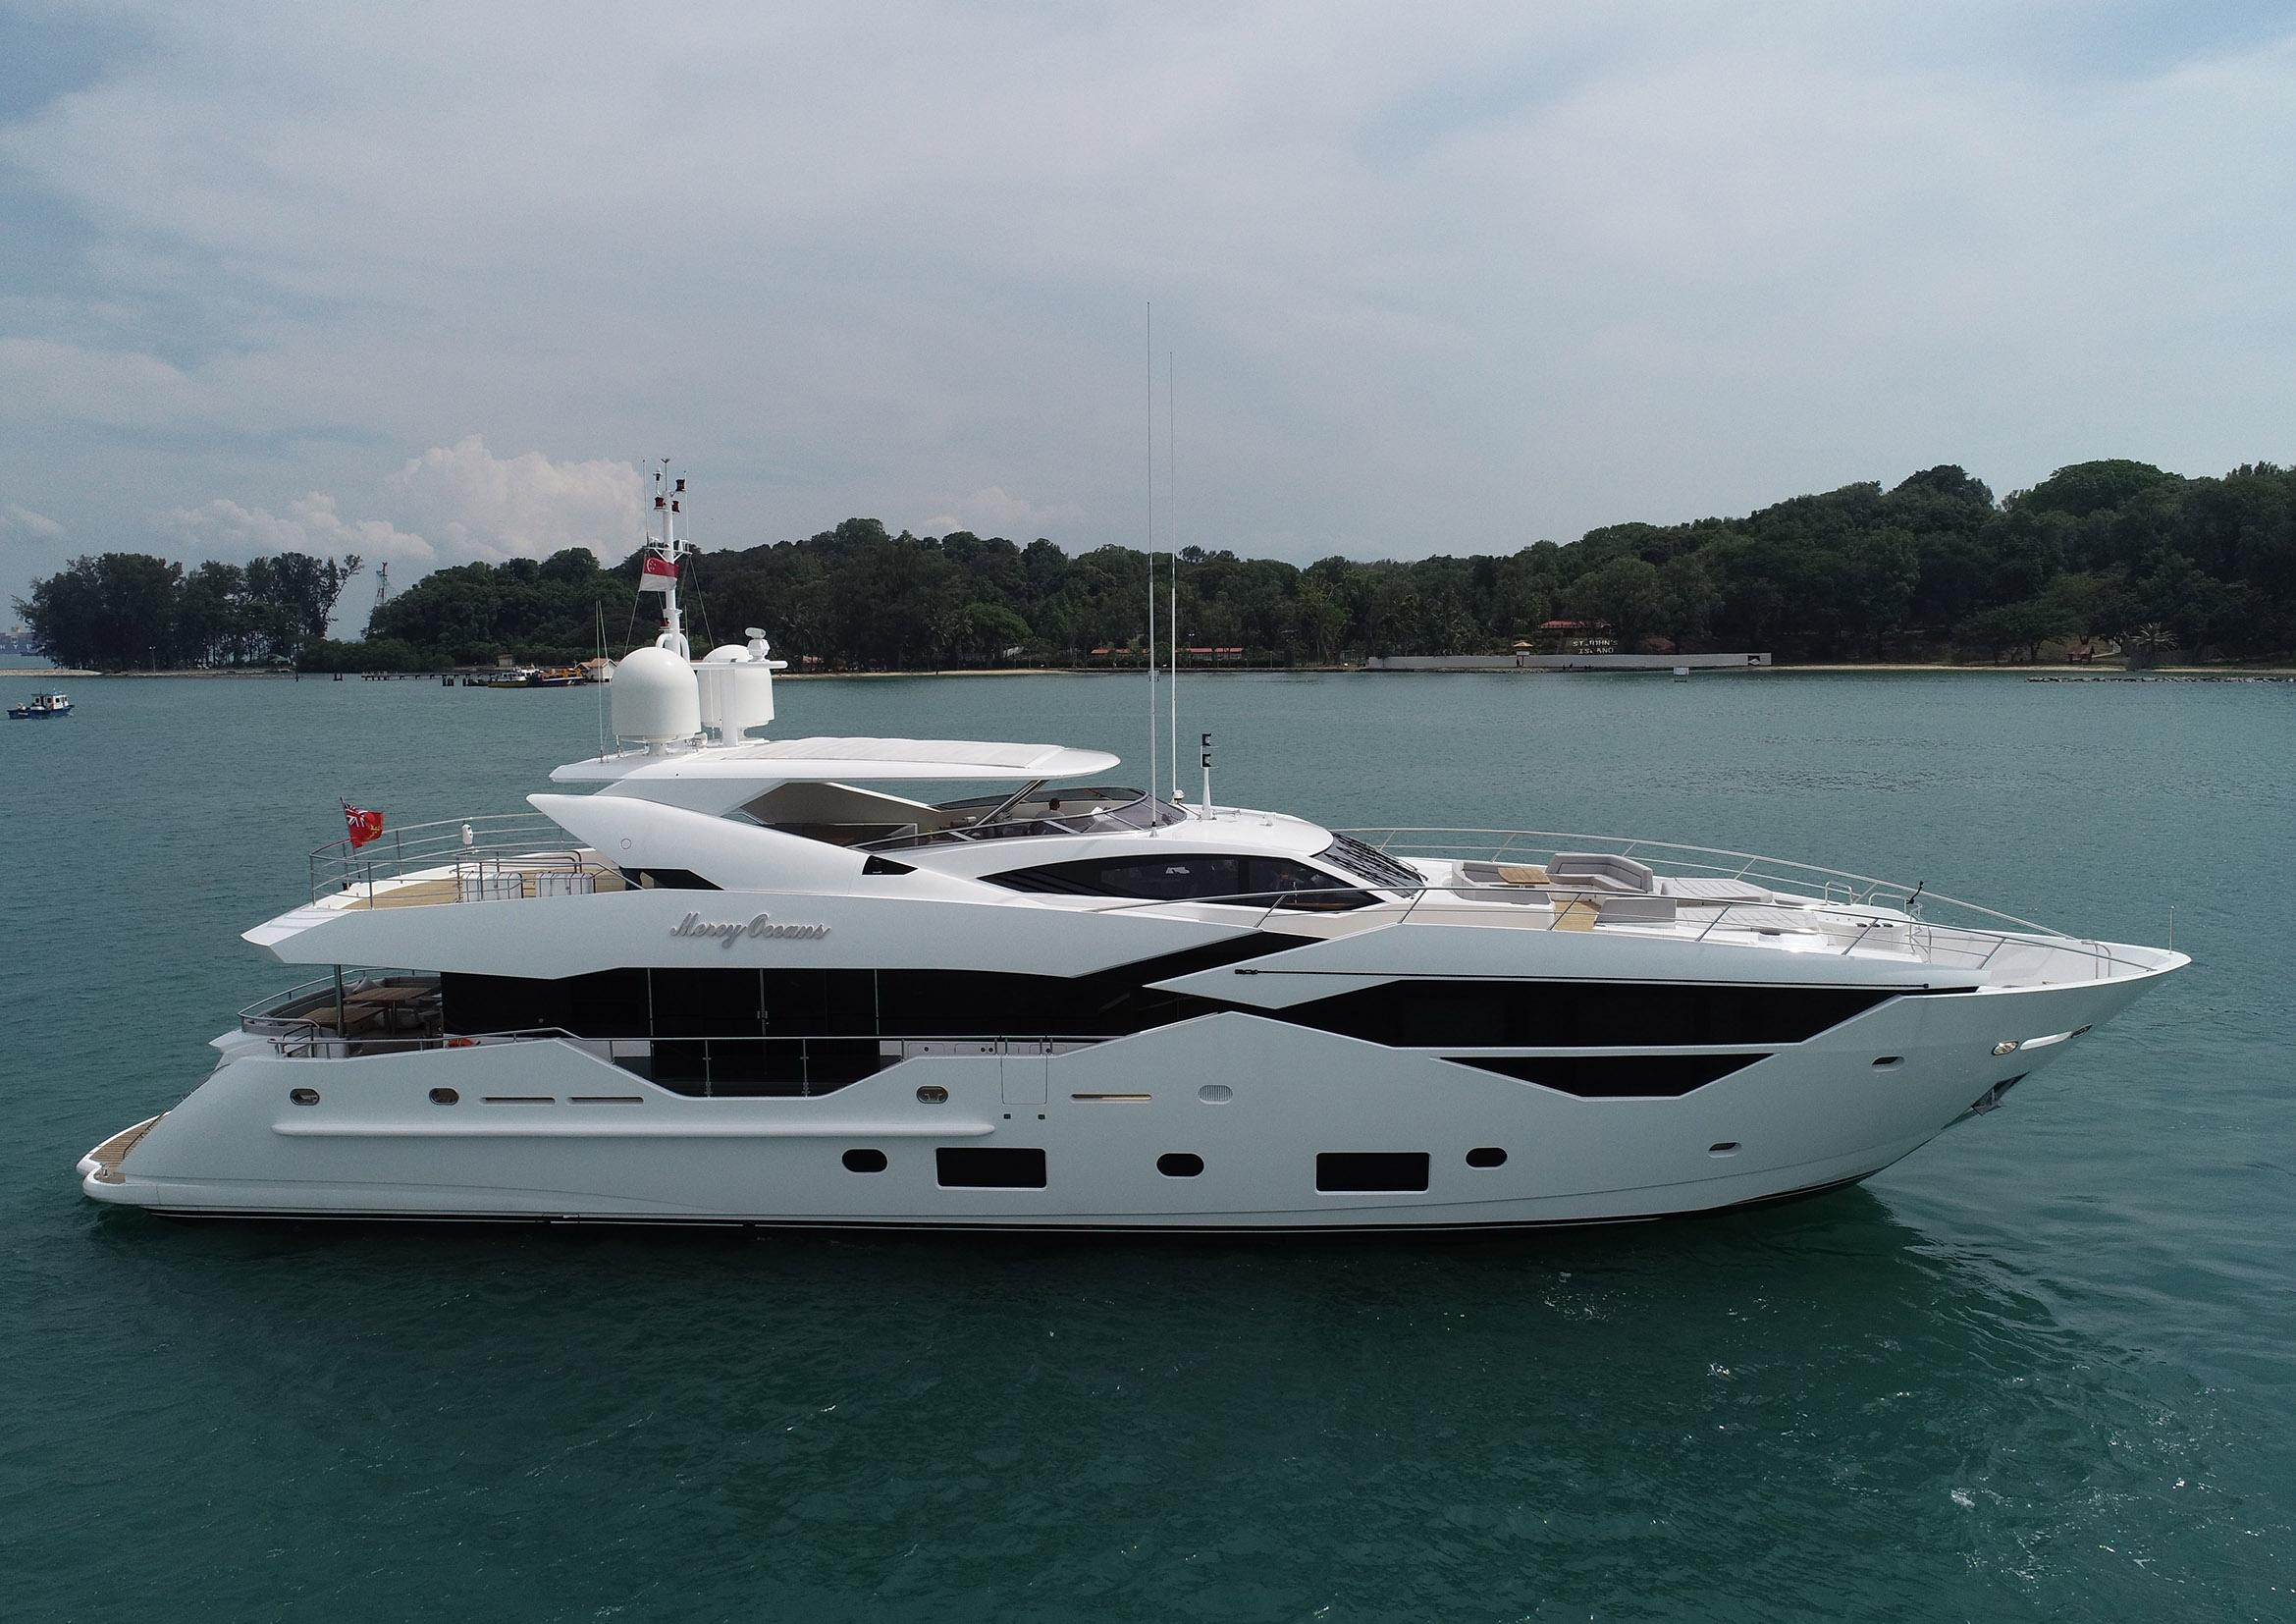 Yacht Badezimmer 2018 Sunseeker 116 Yacht Power Boat For Sale Yachtworld